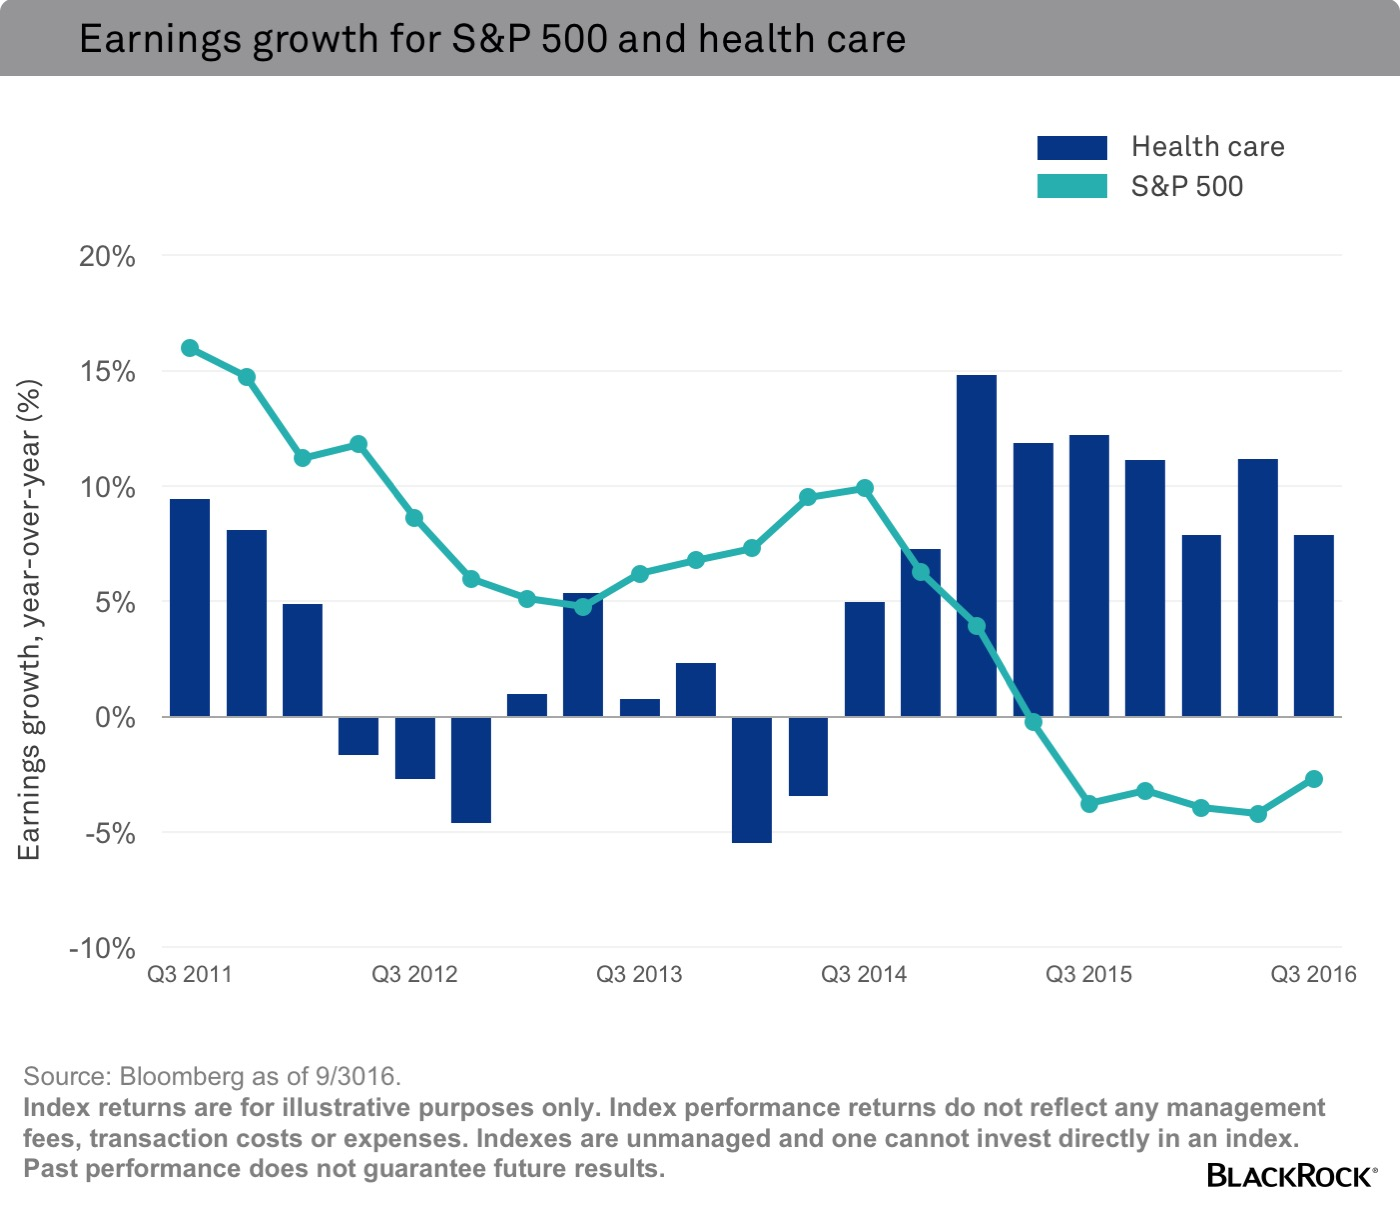 Earnings growth for S&P 500 and health care